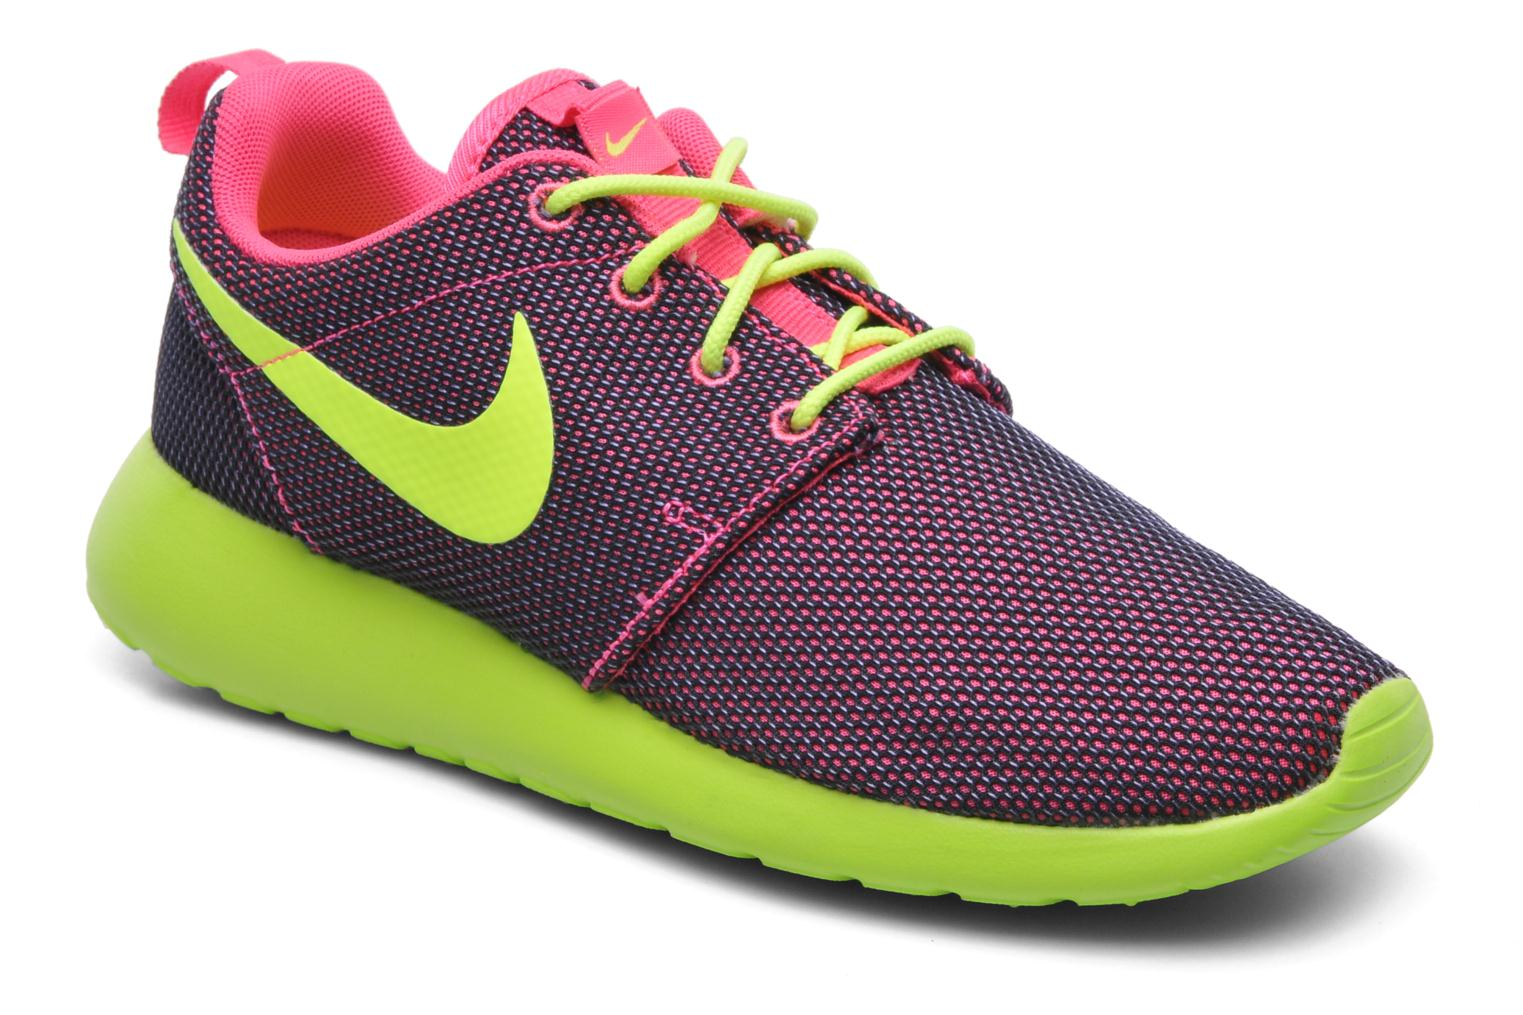 huge discount 29ffd 4823f Baskets Nike Wmns Nike Roshe One Rose vue détail paire